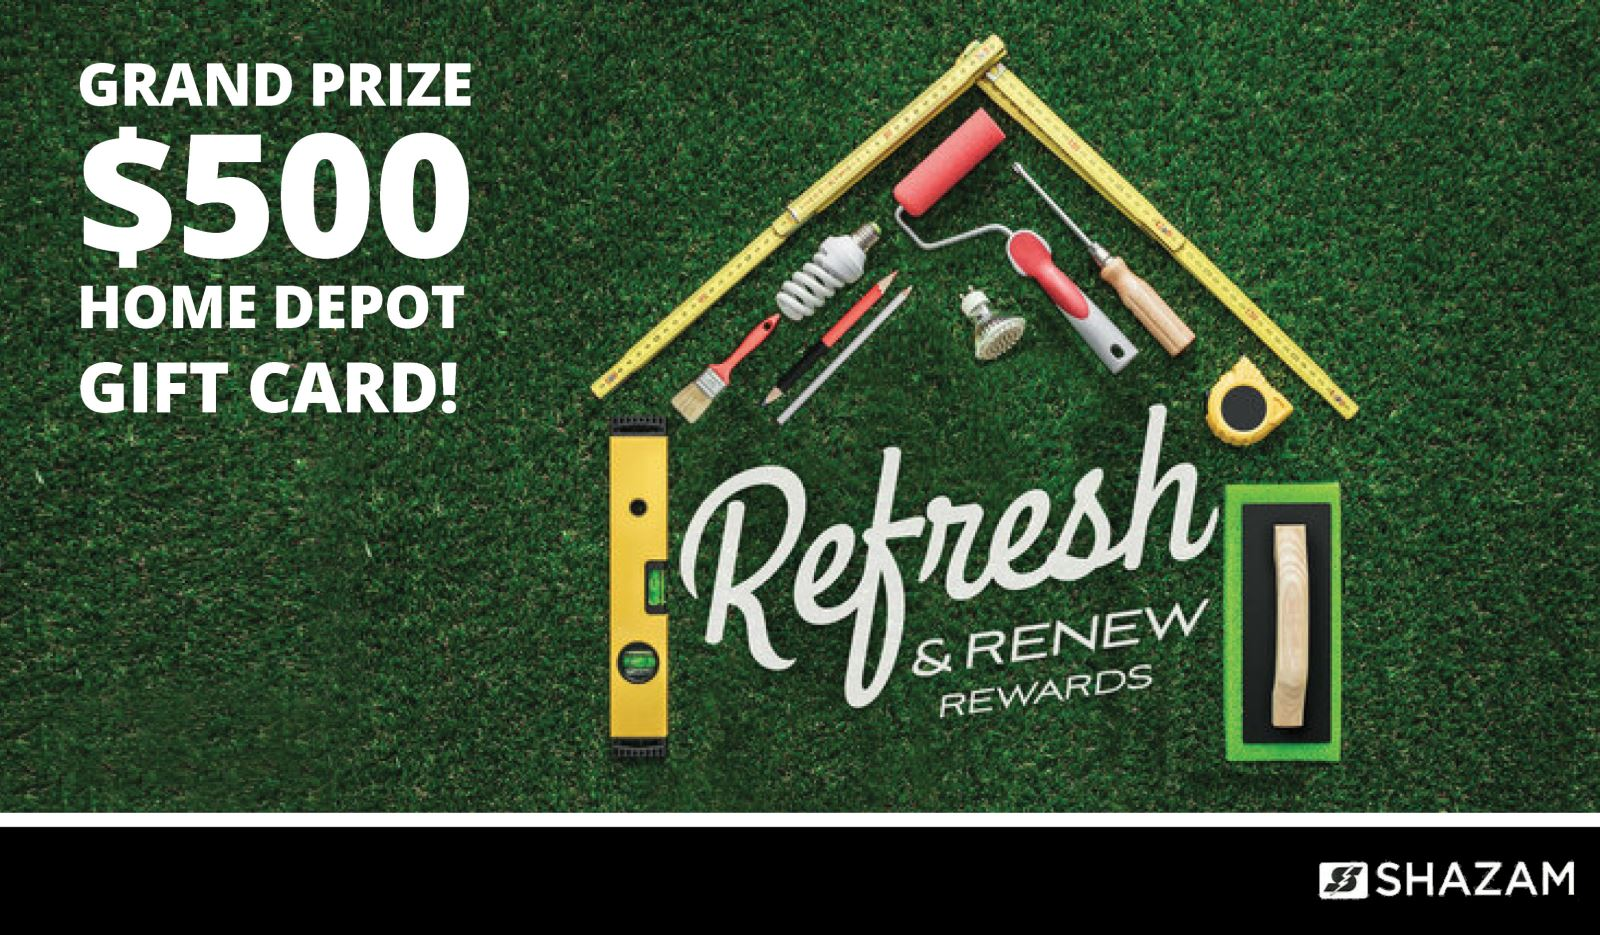 Refresh and Renew Grand prize $500 Home Depot Gift Card